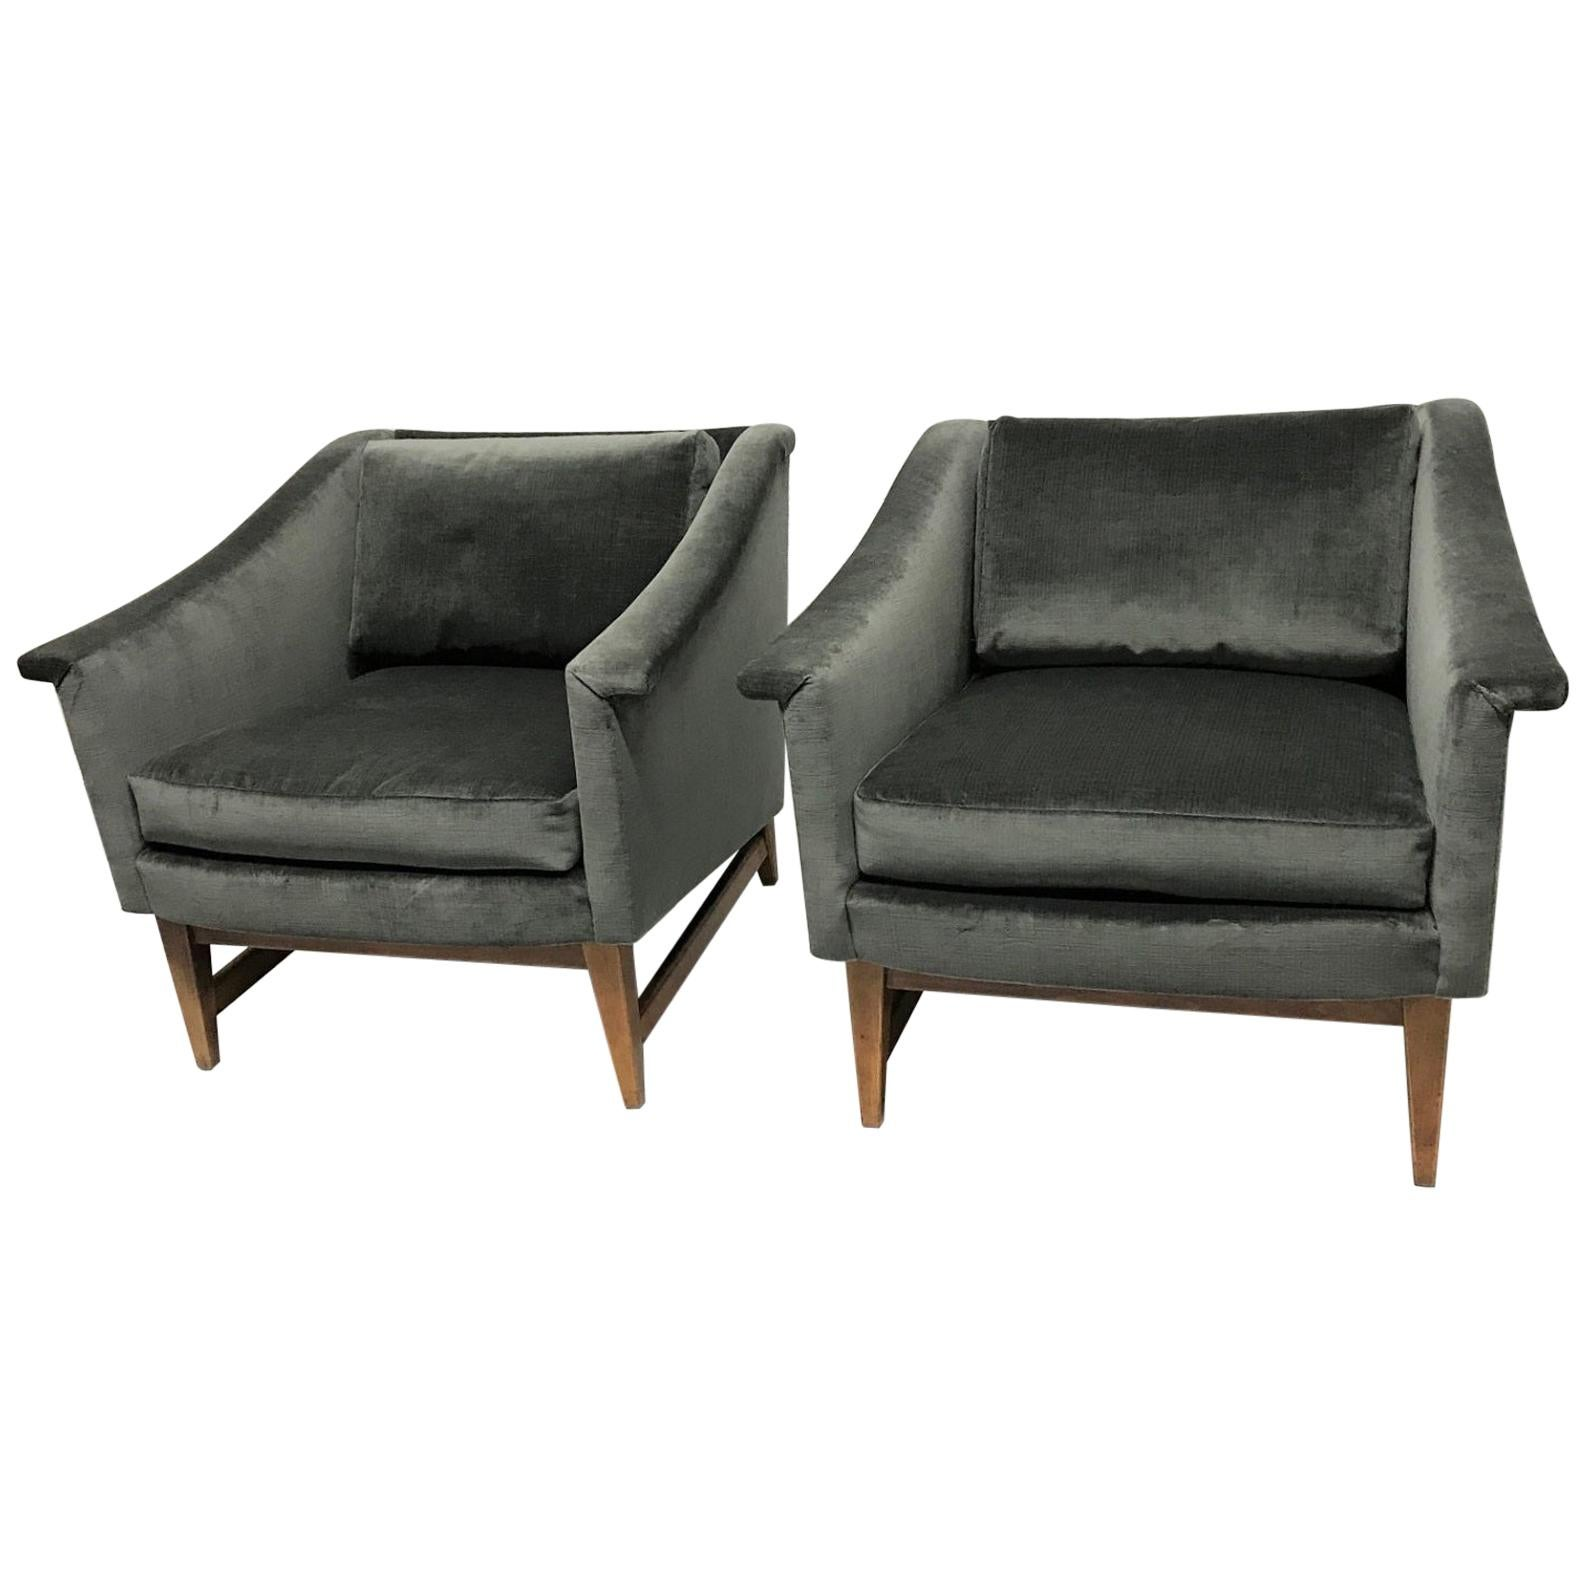 Pair of Jens Risom Style Lounge Chairs